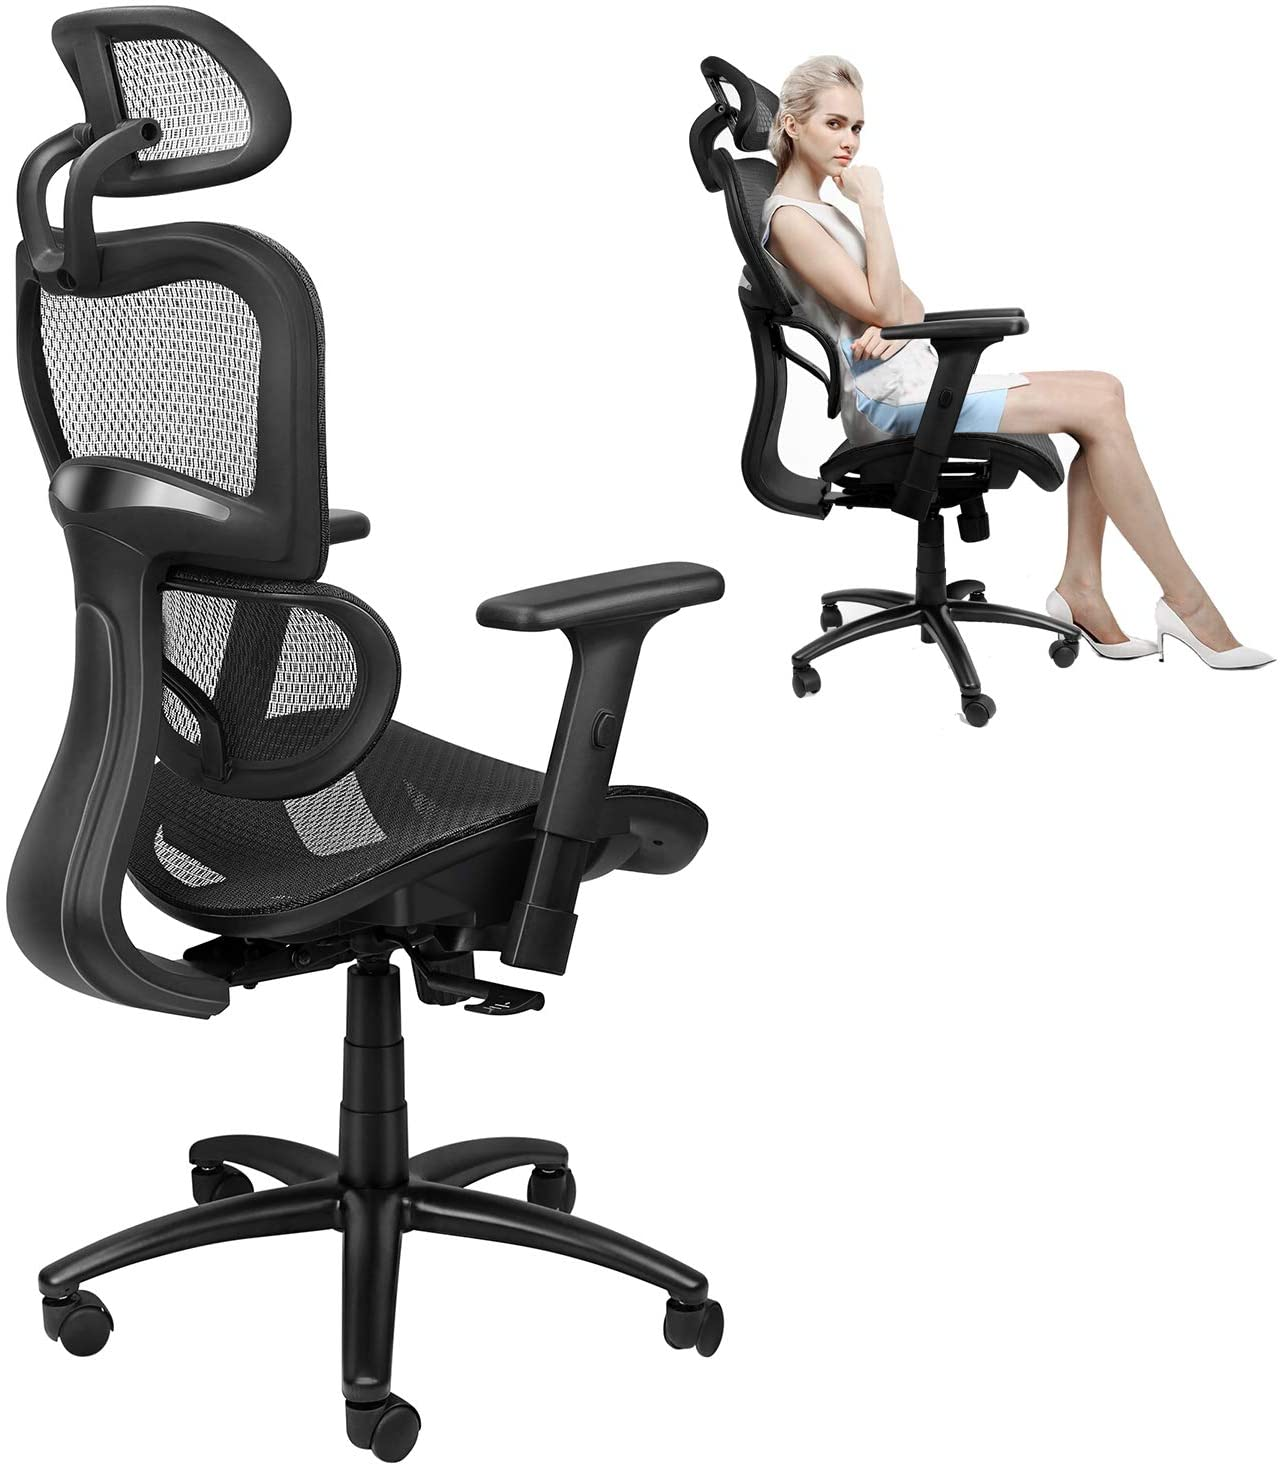 Home Office Chair Ergonomic Desk Task Chair with Lumbar Support and Tilt Limiter, High Back Mesh Computer Chair Multifunction Headrest, Executive Chair Adjust 3D-Armrest (Black)